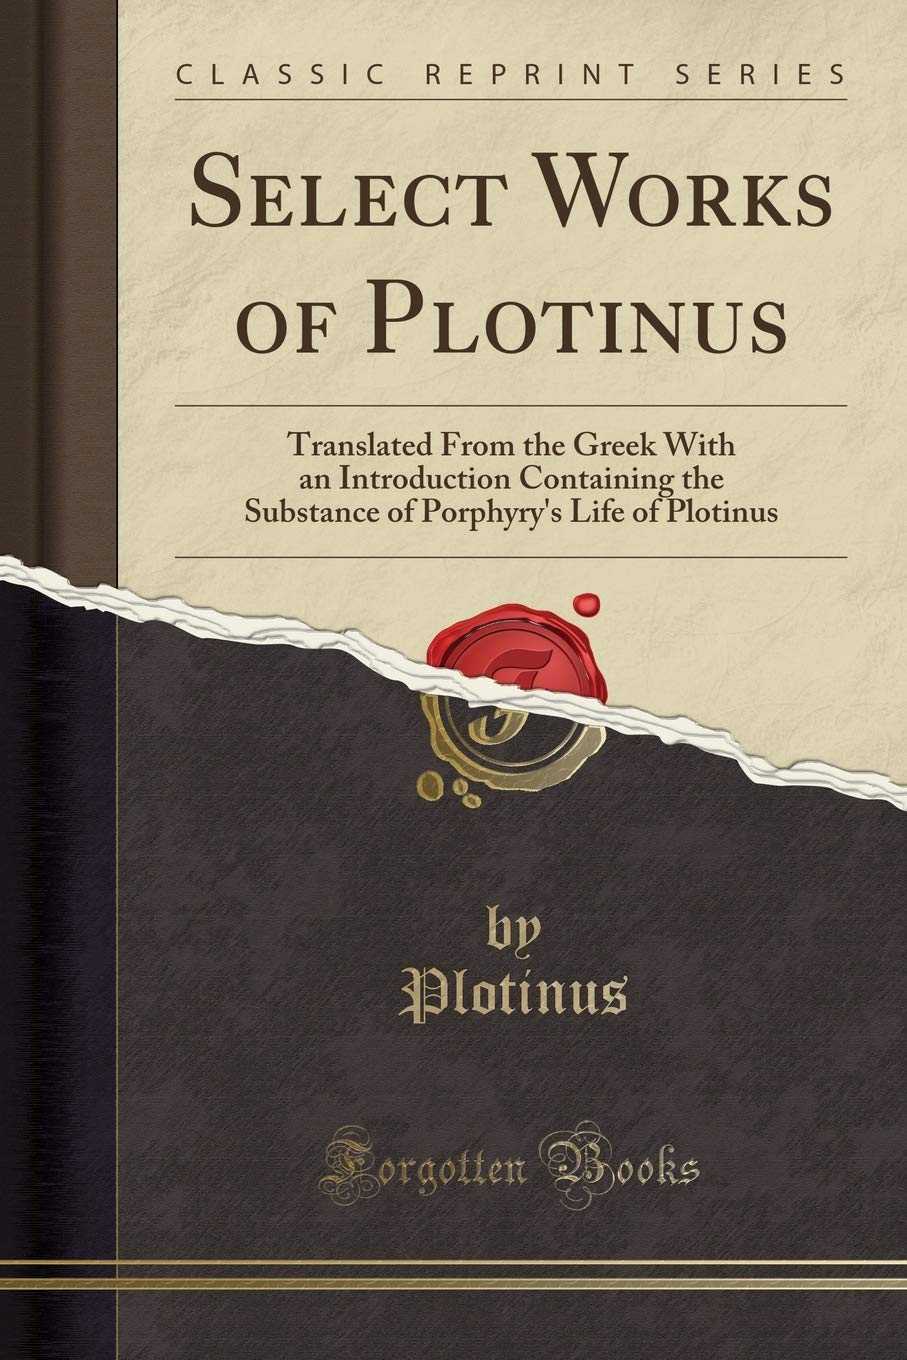 Plotinus: An Introduction to the Enneads